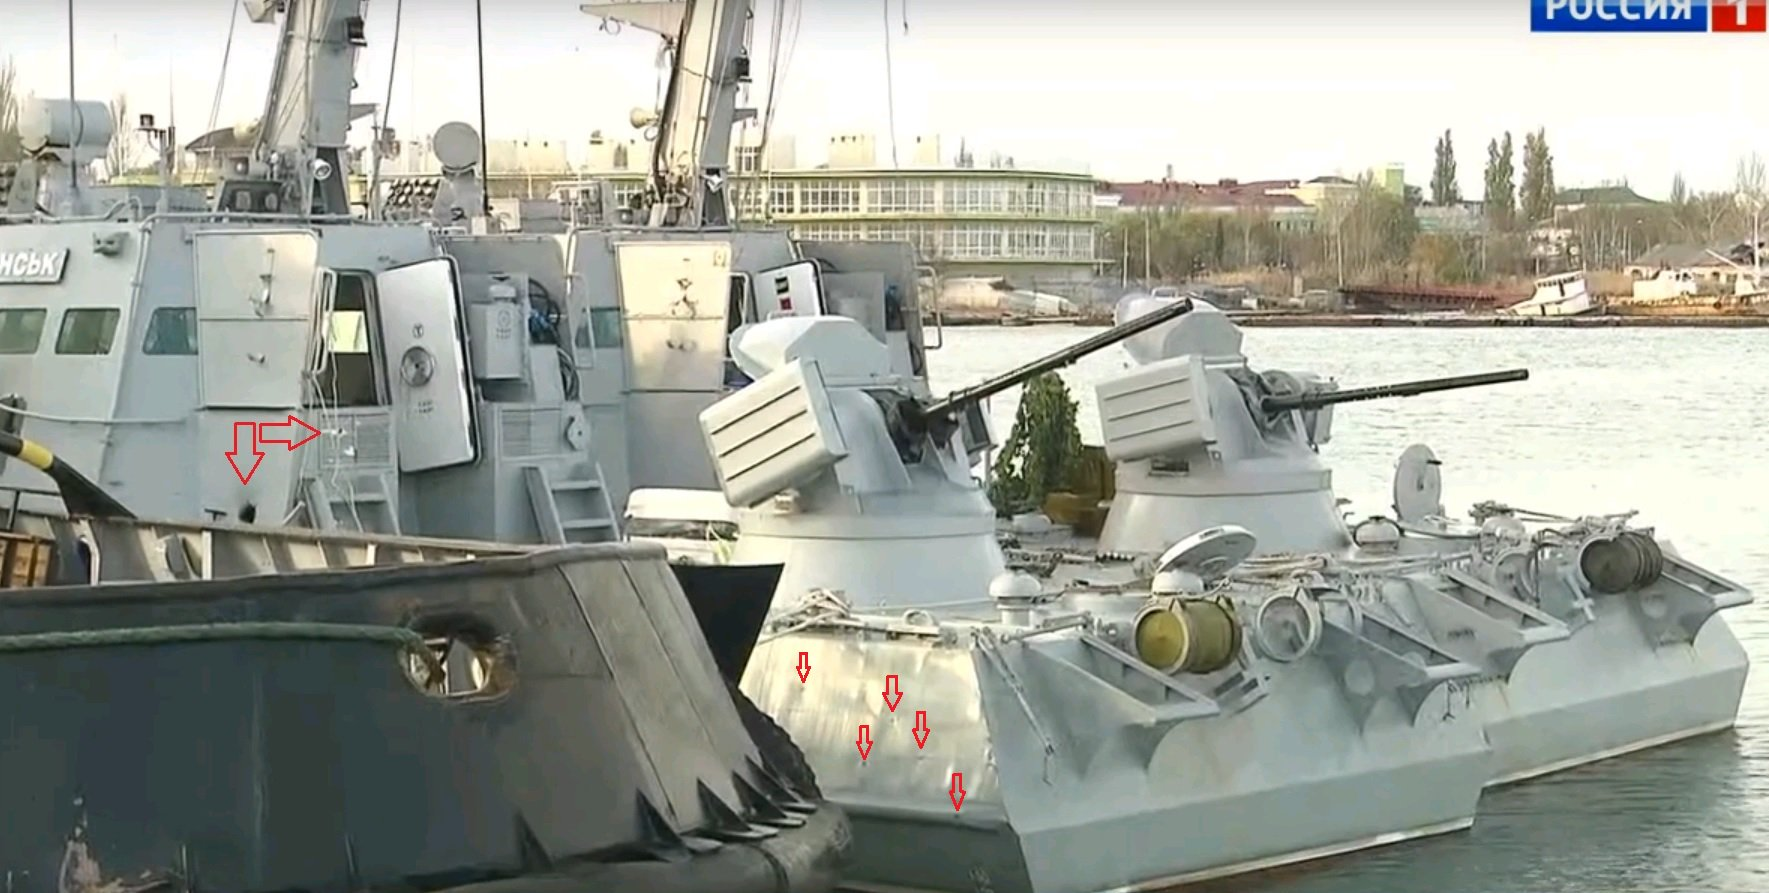 Image 10: Damage to the Ukrainian Navy ship 'Berdyansk'